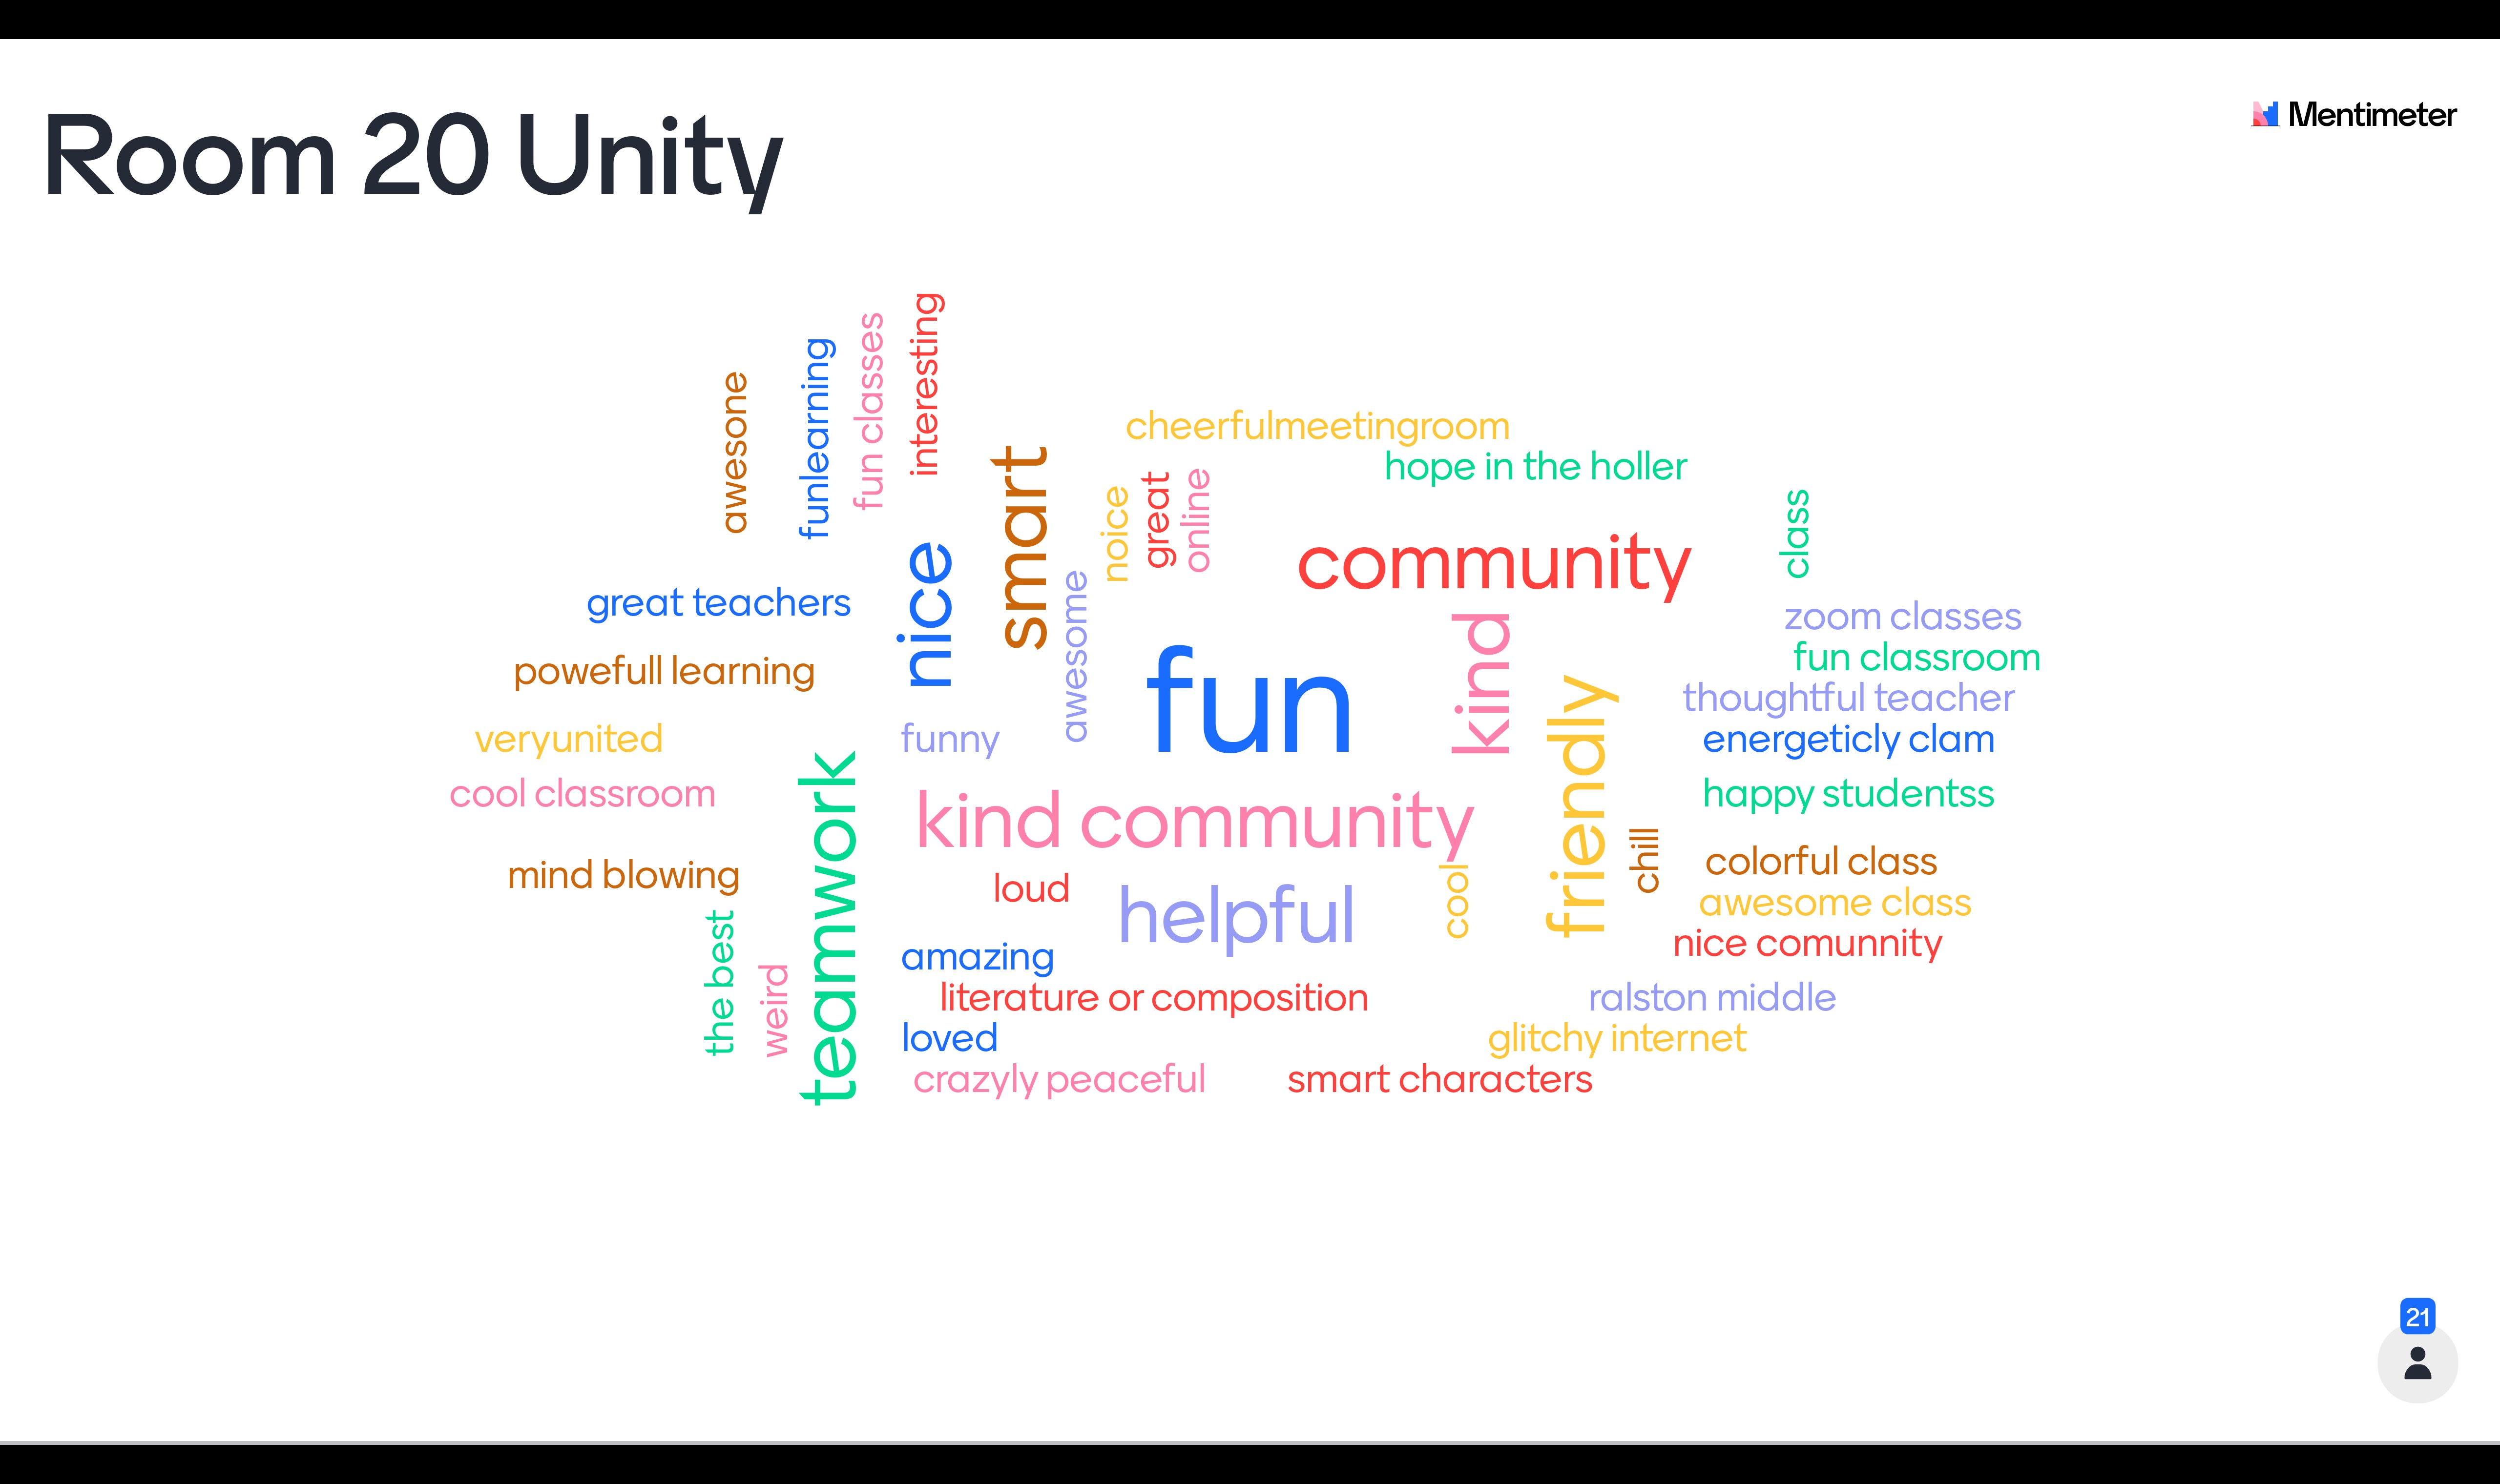 Virtual Learning in Room 20 Unity